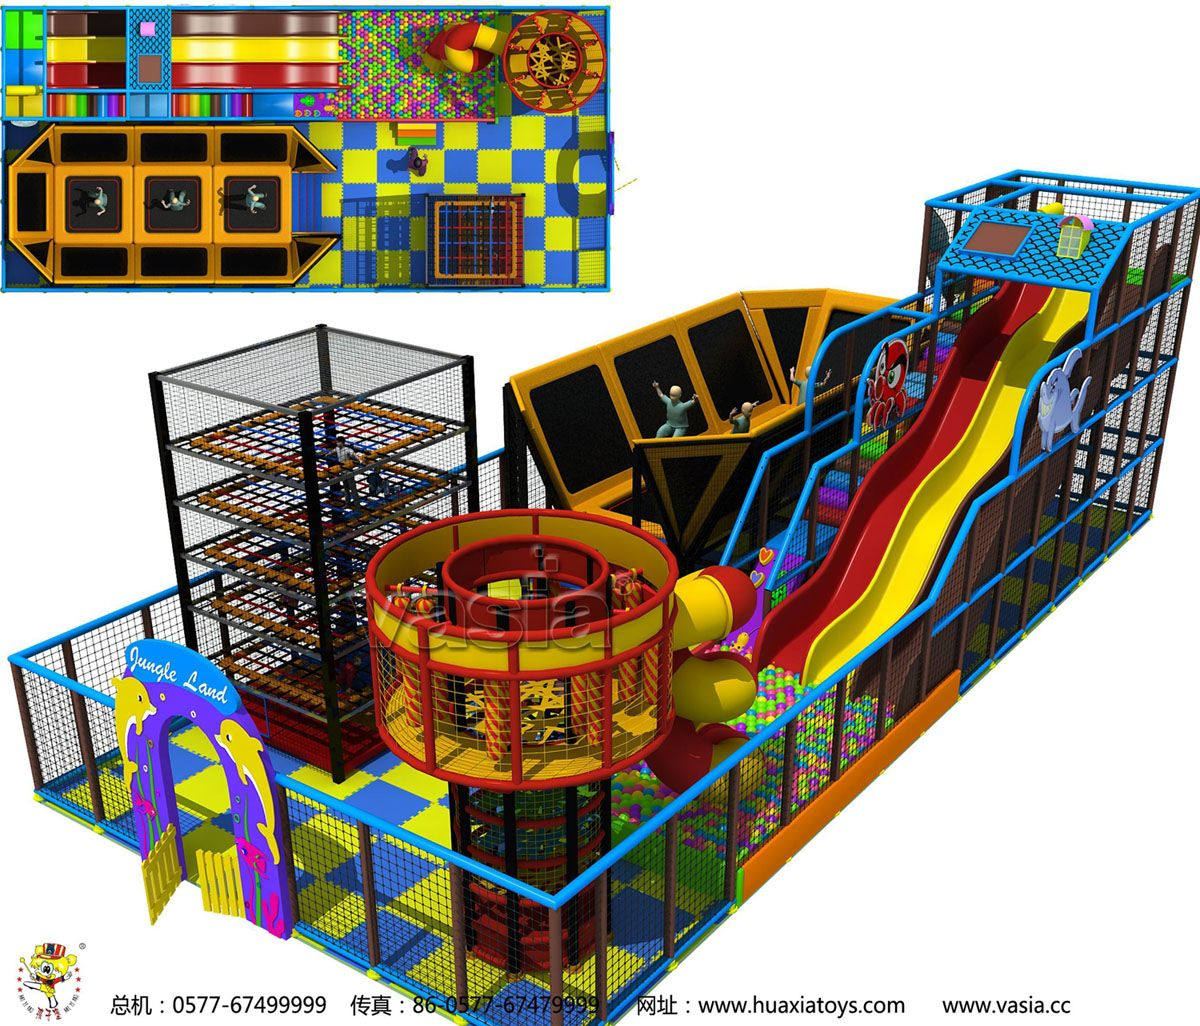 Indoor trampoline park with rope cour ideas for the for Indoor playground design ideas